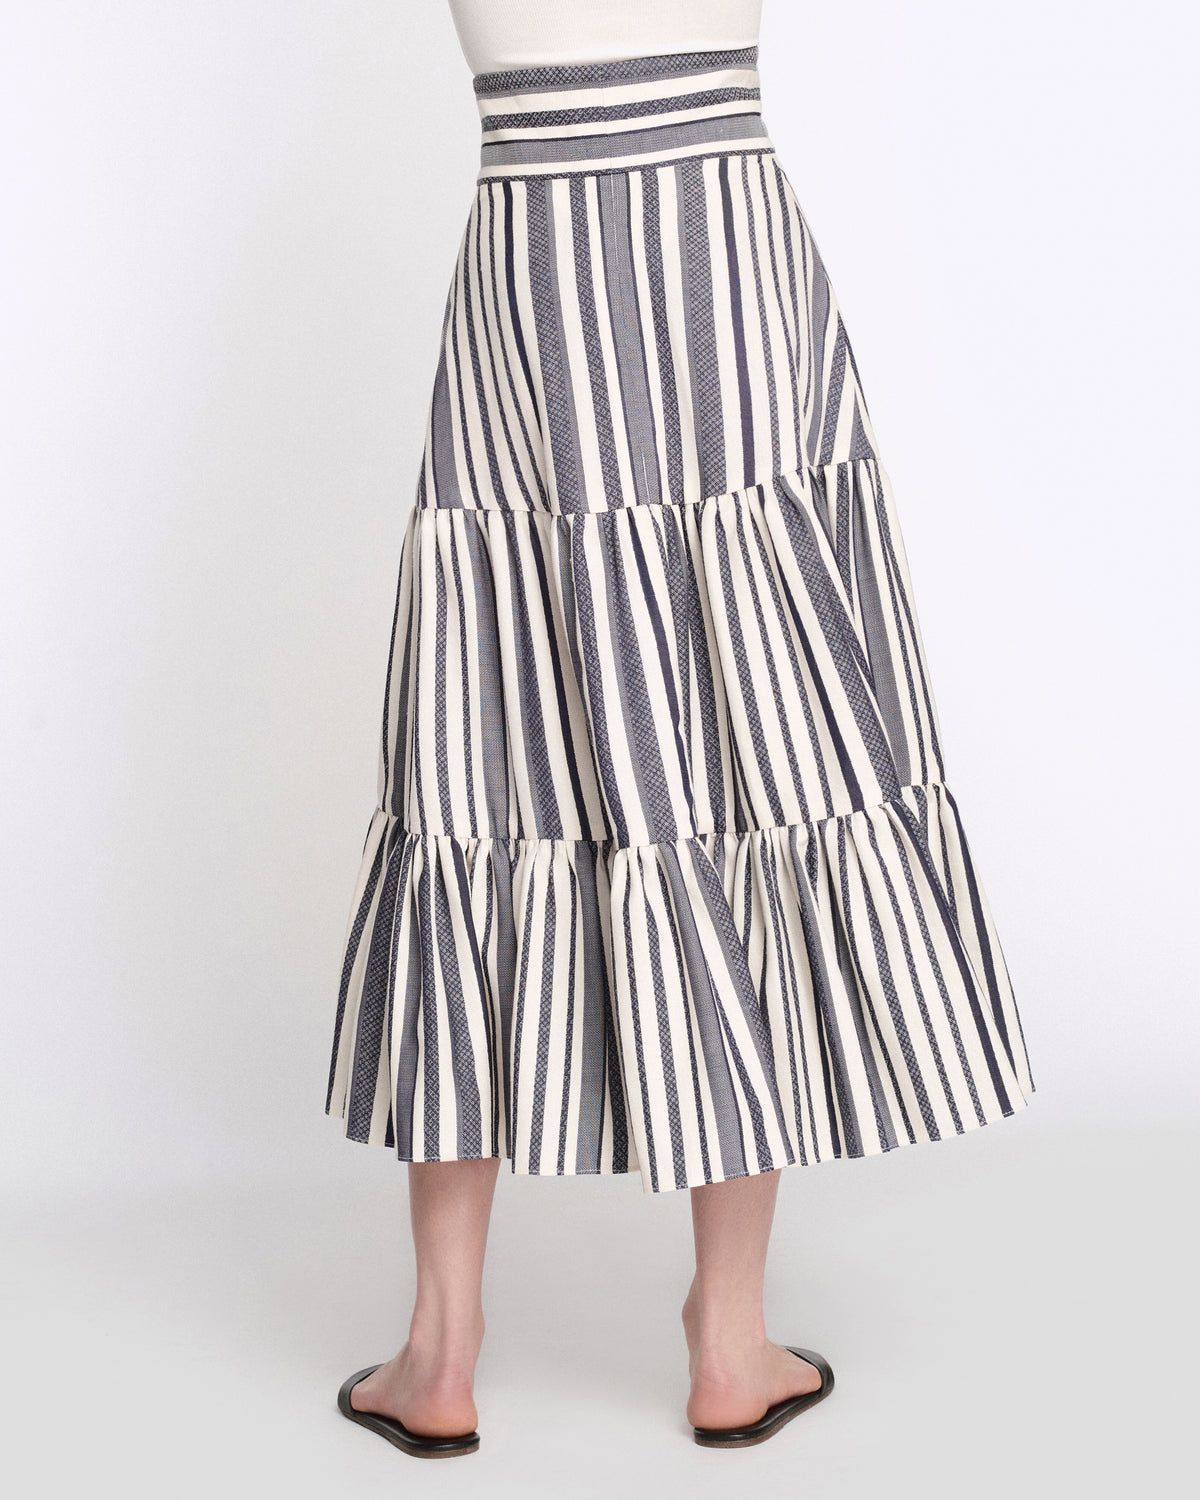 Malika Maxi Skirt in Ivory with Navy Stripes